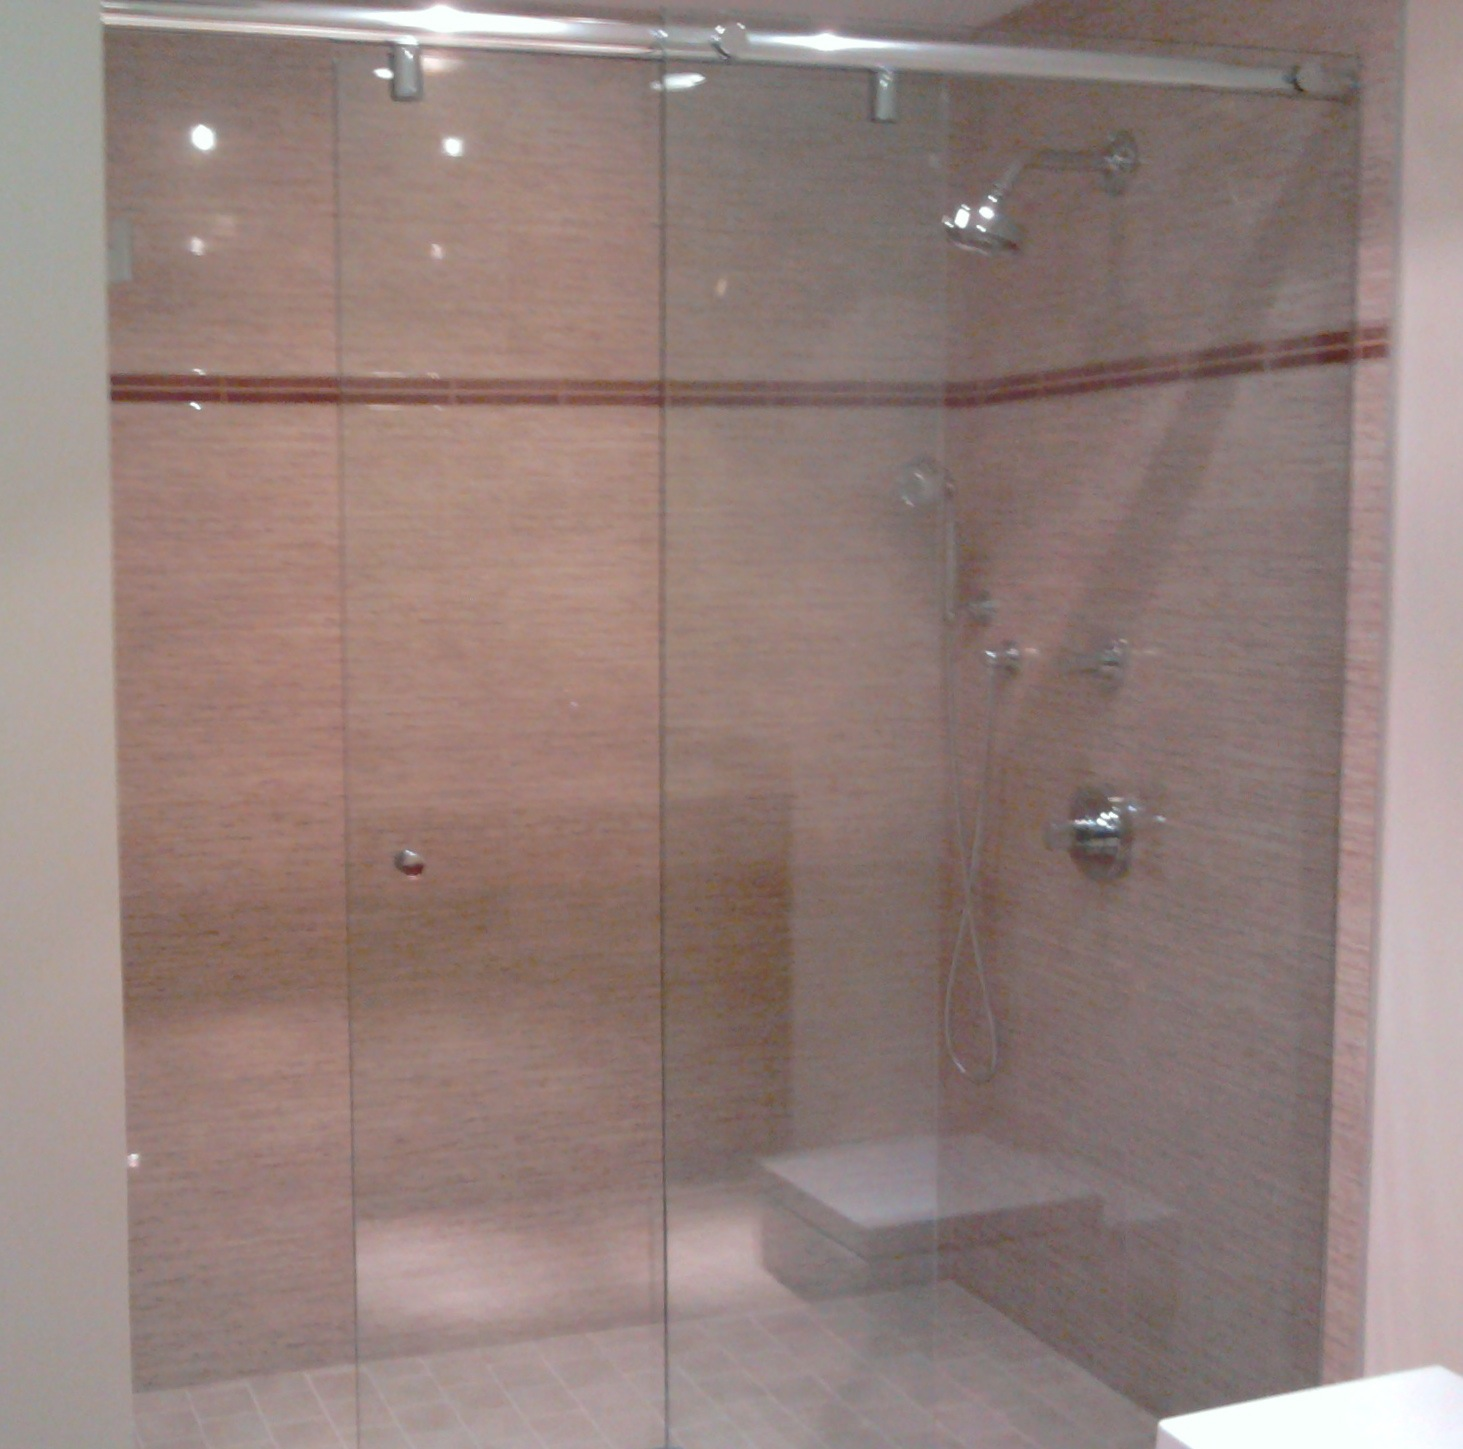 Hydroslide Frameless Glass Shower Units Are Popular In Modern Dallas